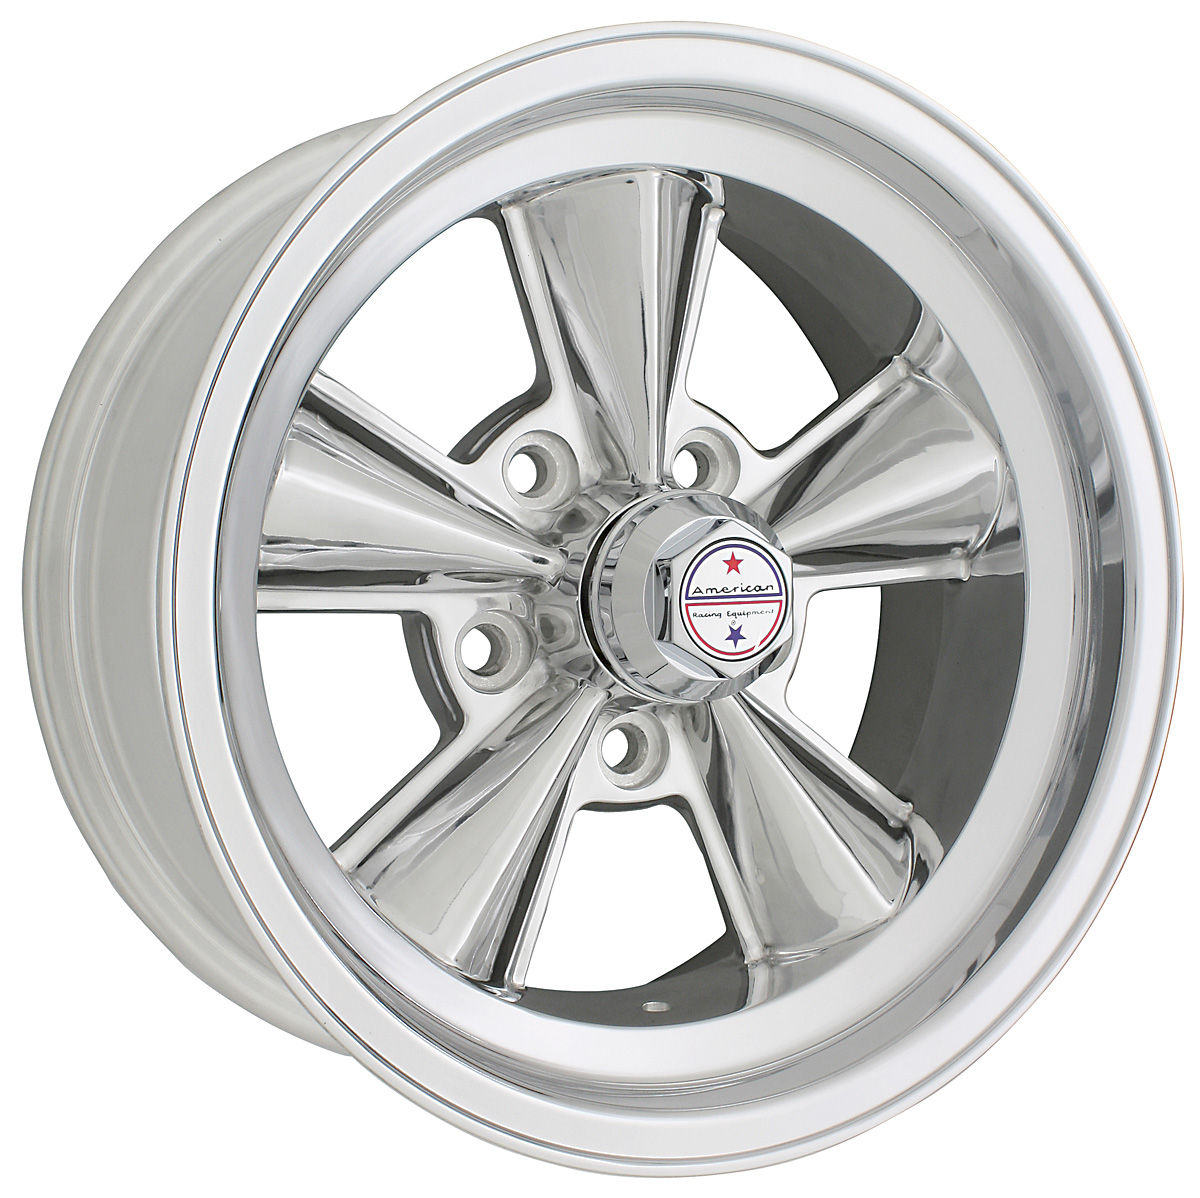 "Photo of Chevelle Wheel, T70R Polished 15"" x 7"" (BS 4"") 0 mm offset"